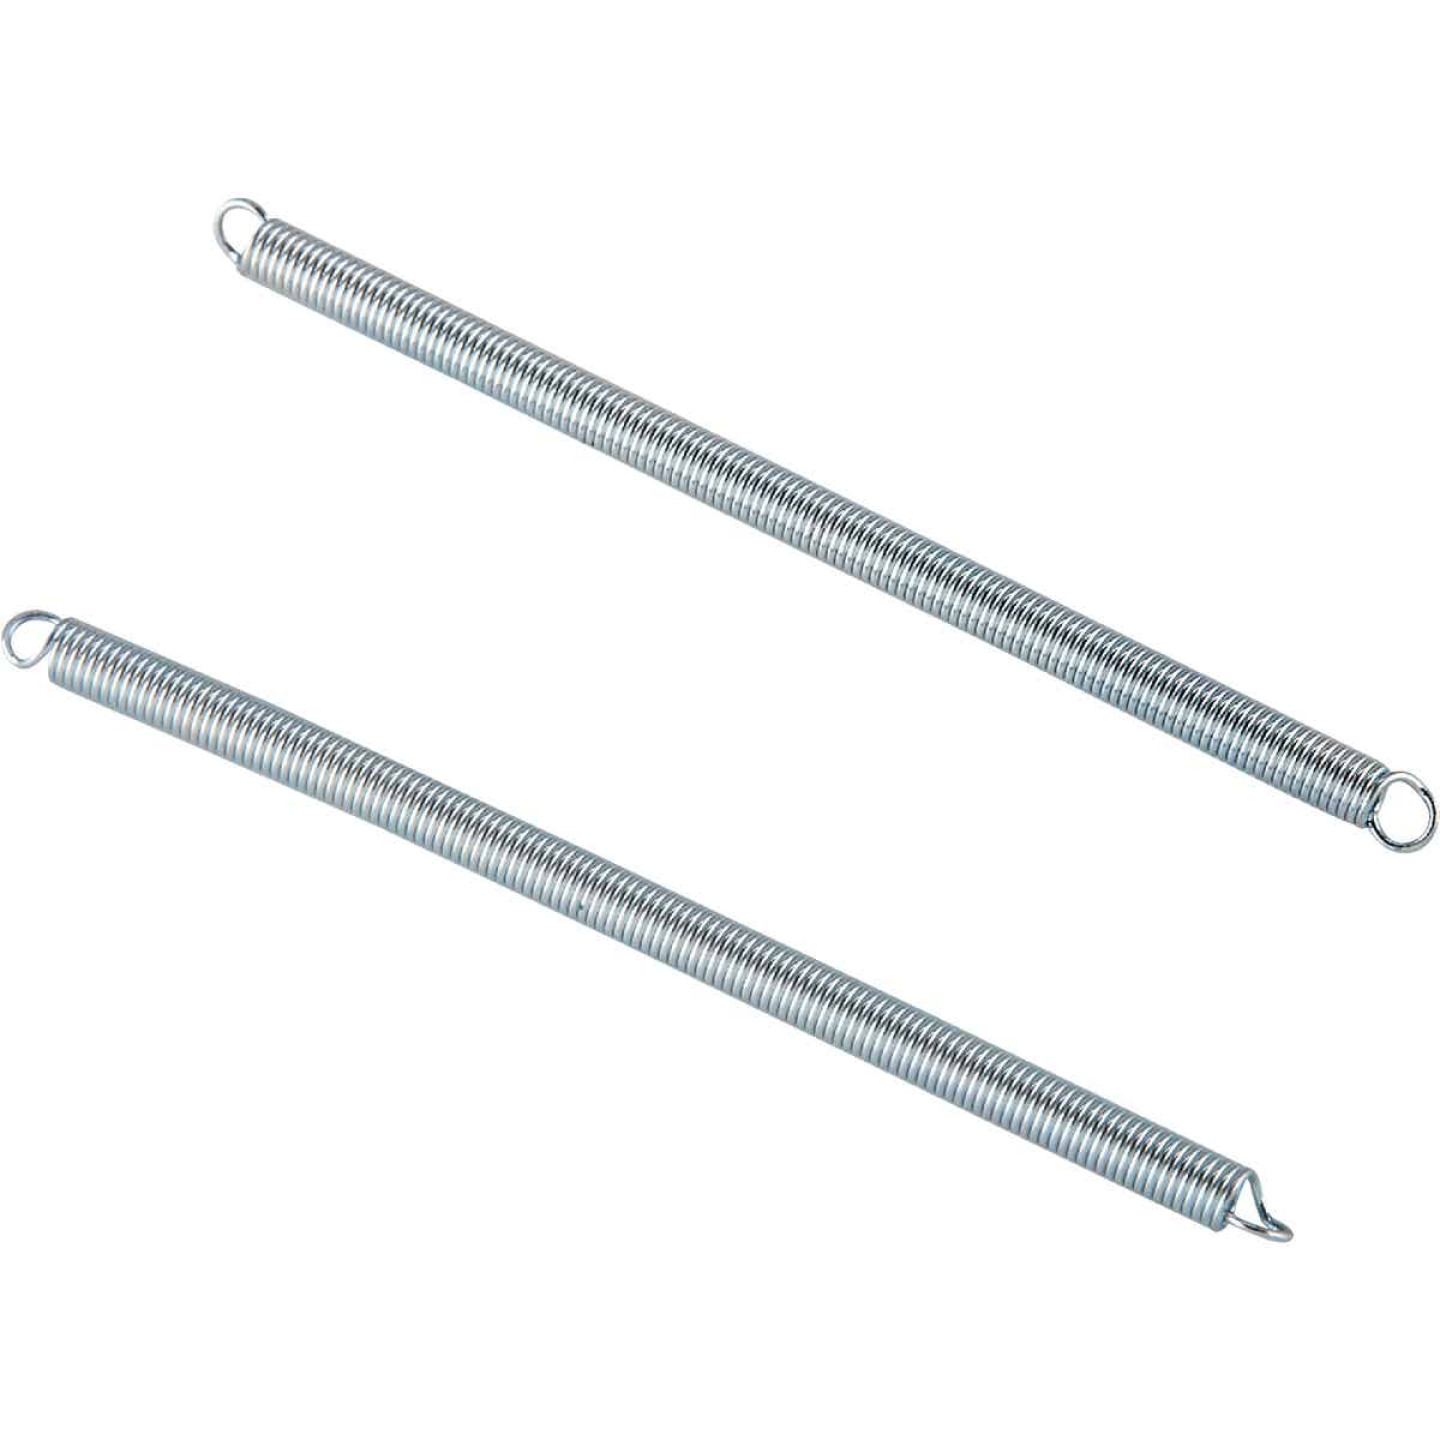 Century Spring 4-1/2 In. x 13/16 In. Extension Spring (2 Count) Image 1